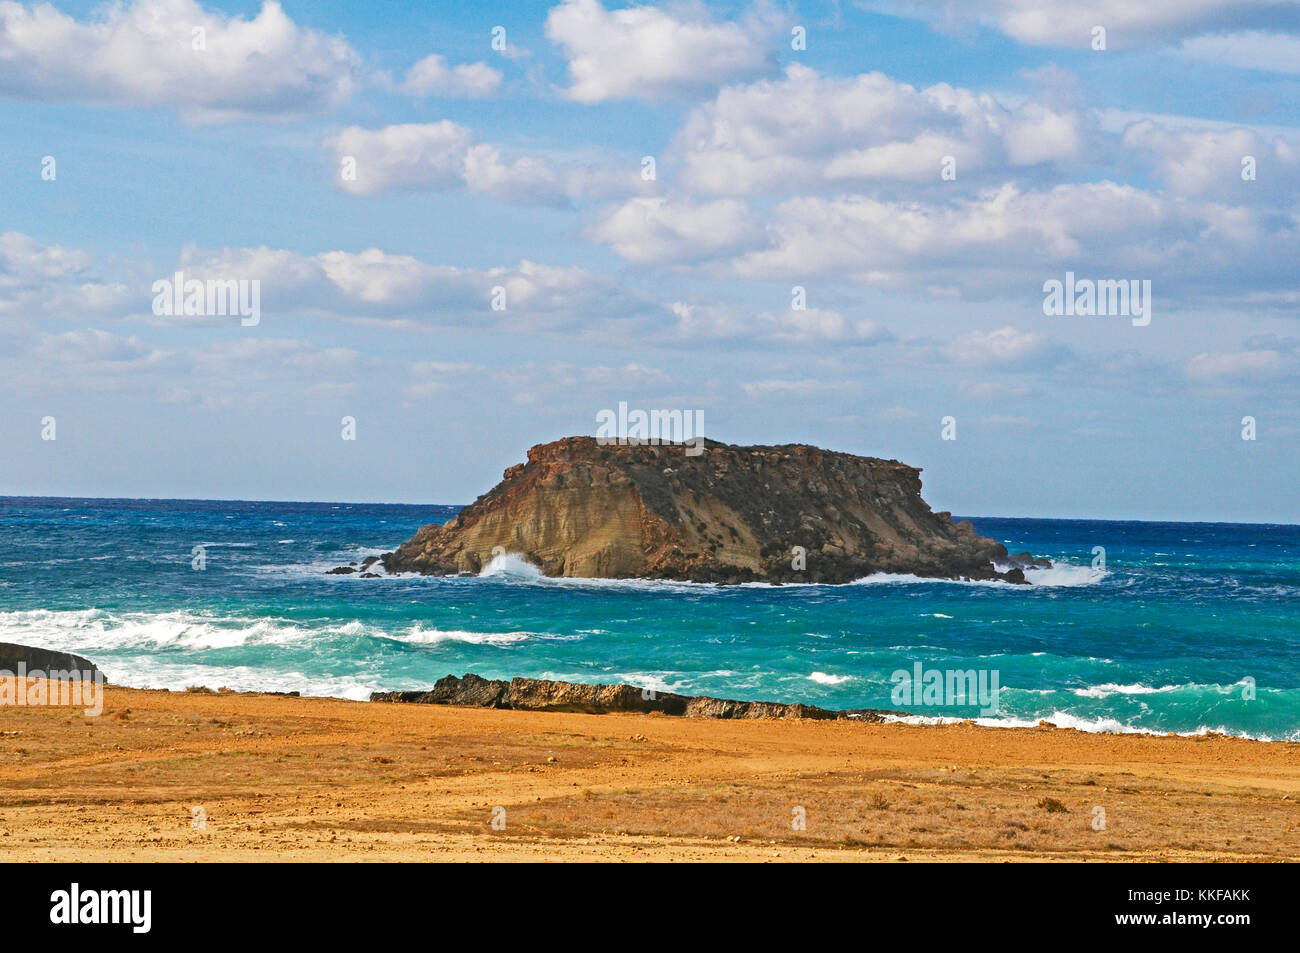 View to the offshore island at Agios Georgios  Cape Drepano Paphos Cyprus - Stock Image